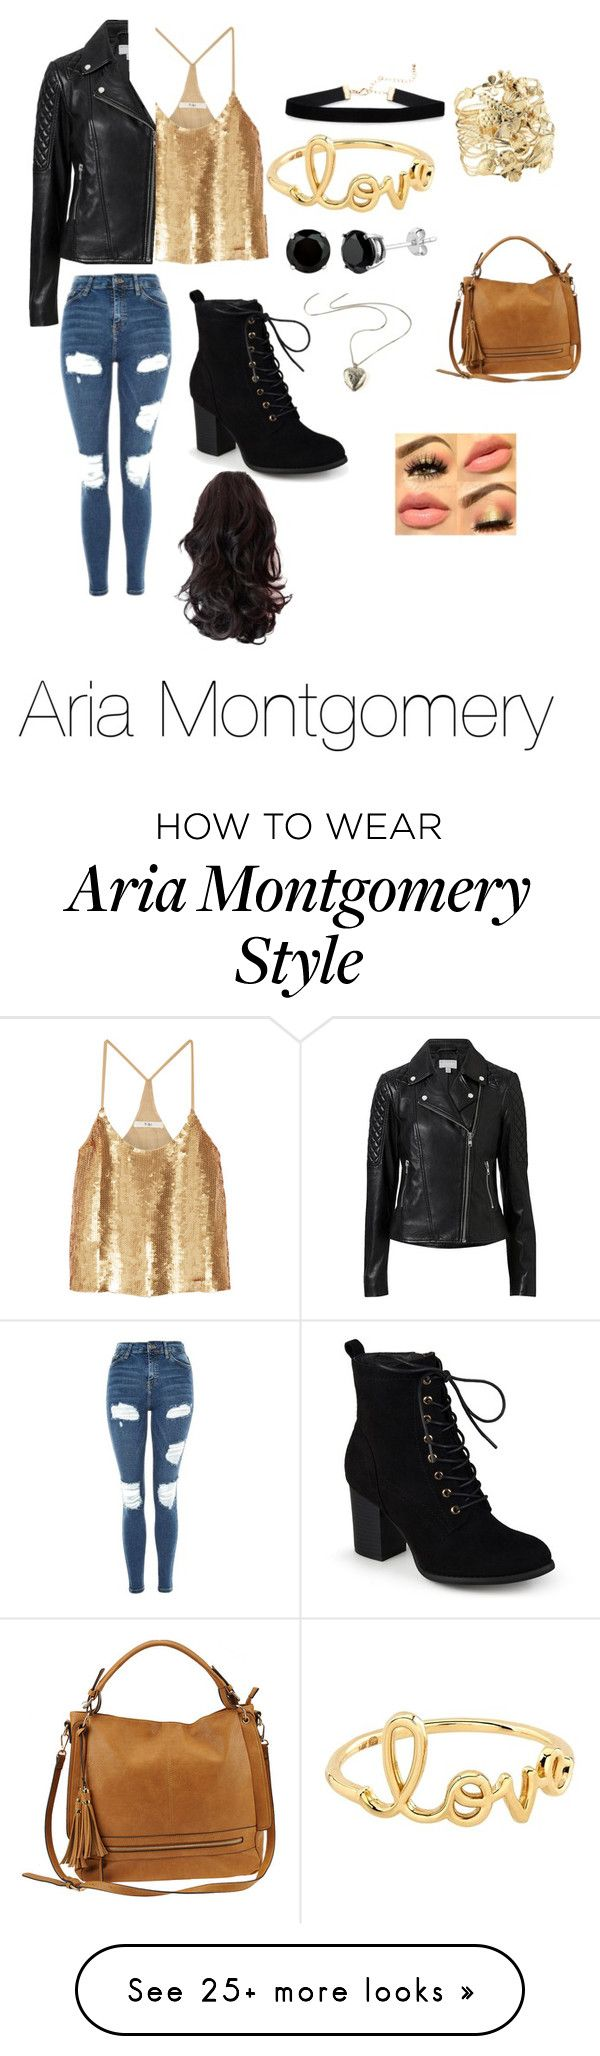 """Aria Montgomery"" by carebearlover on Polyvore featuring Witchery, TIBI, Journee Collection, Topshop, Sydney Evan, Aurélie Bidermann, Urban Expressions and pretty"